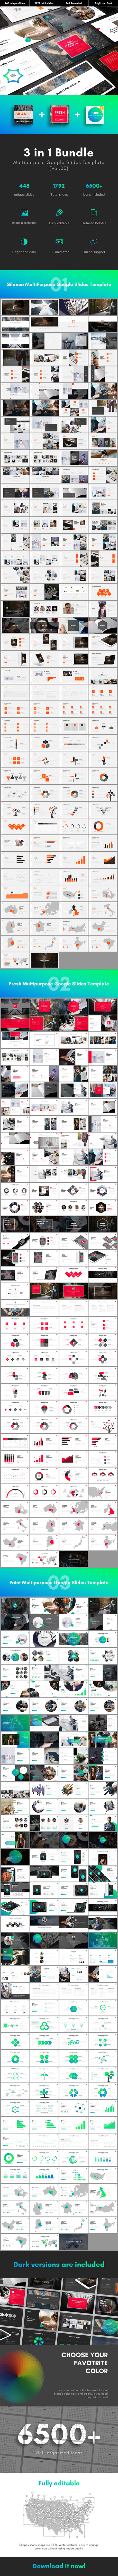 3 in 1 Multipurpose Google Slides Template Bundle (Vol.03) - Google Slides Presentation Templates